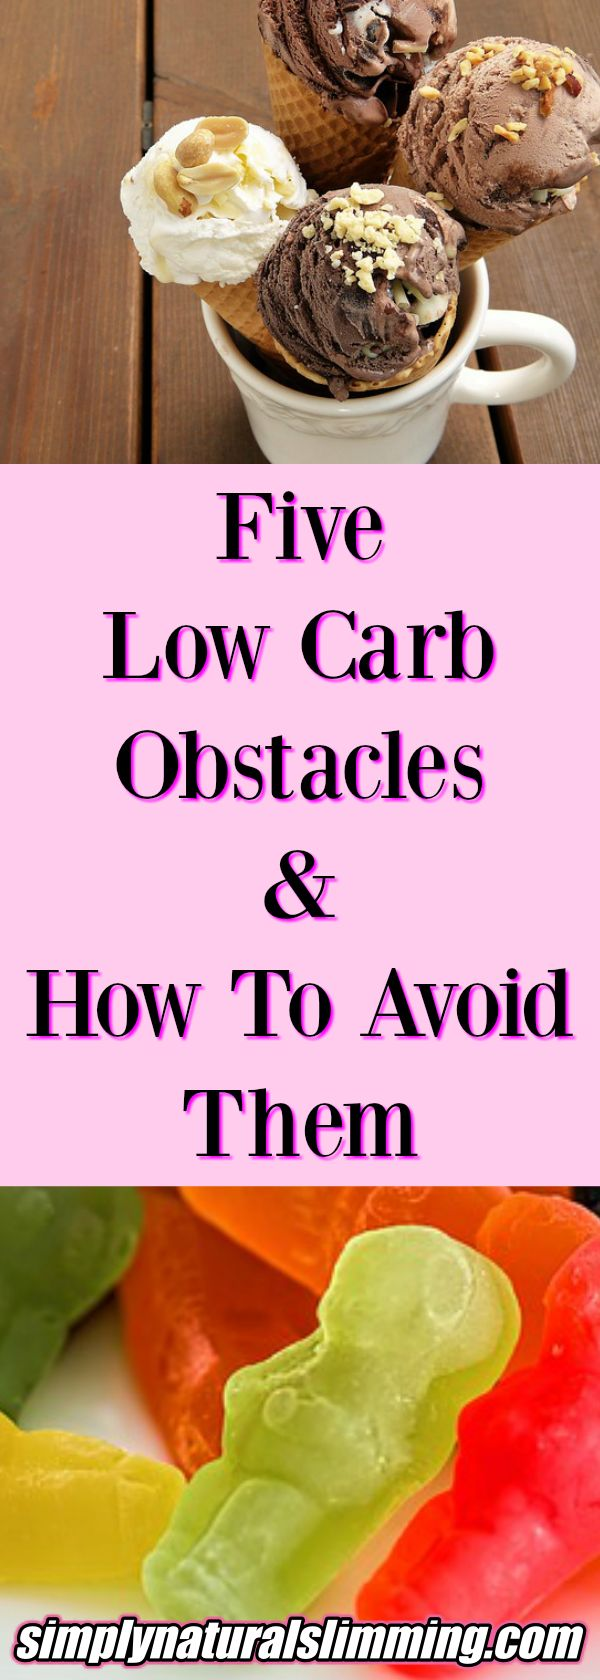 How to start a low carb diet without the usual setbacks. Make your low carb journey easier with these five quick tips.